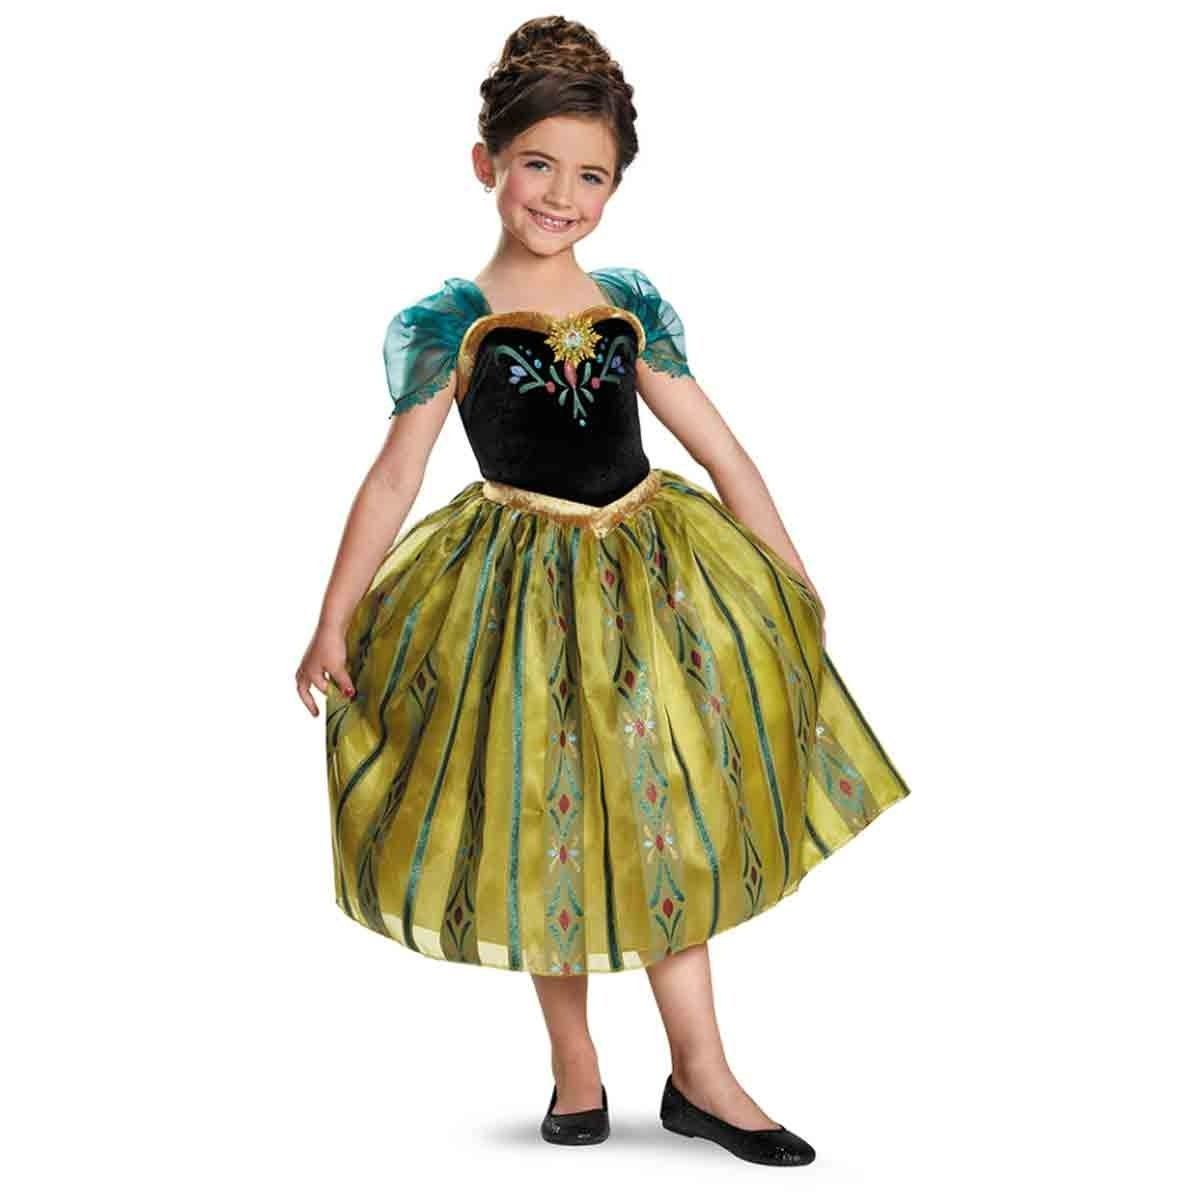 Frozen Princess Anna Deluxe Coronation Gown Child Costume Disguise 76909 - Gold